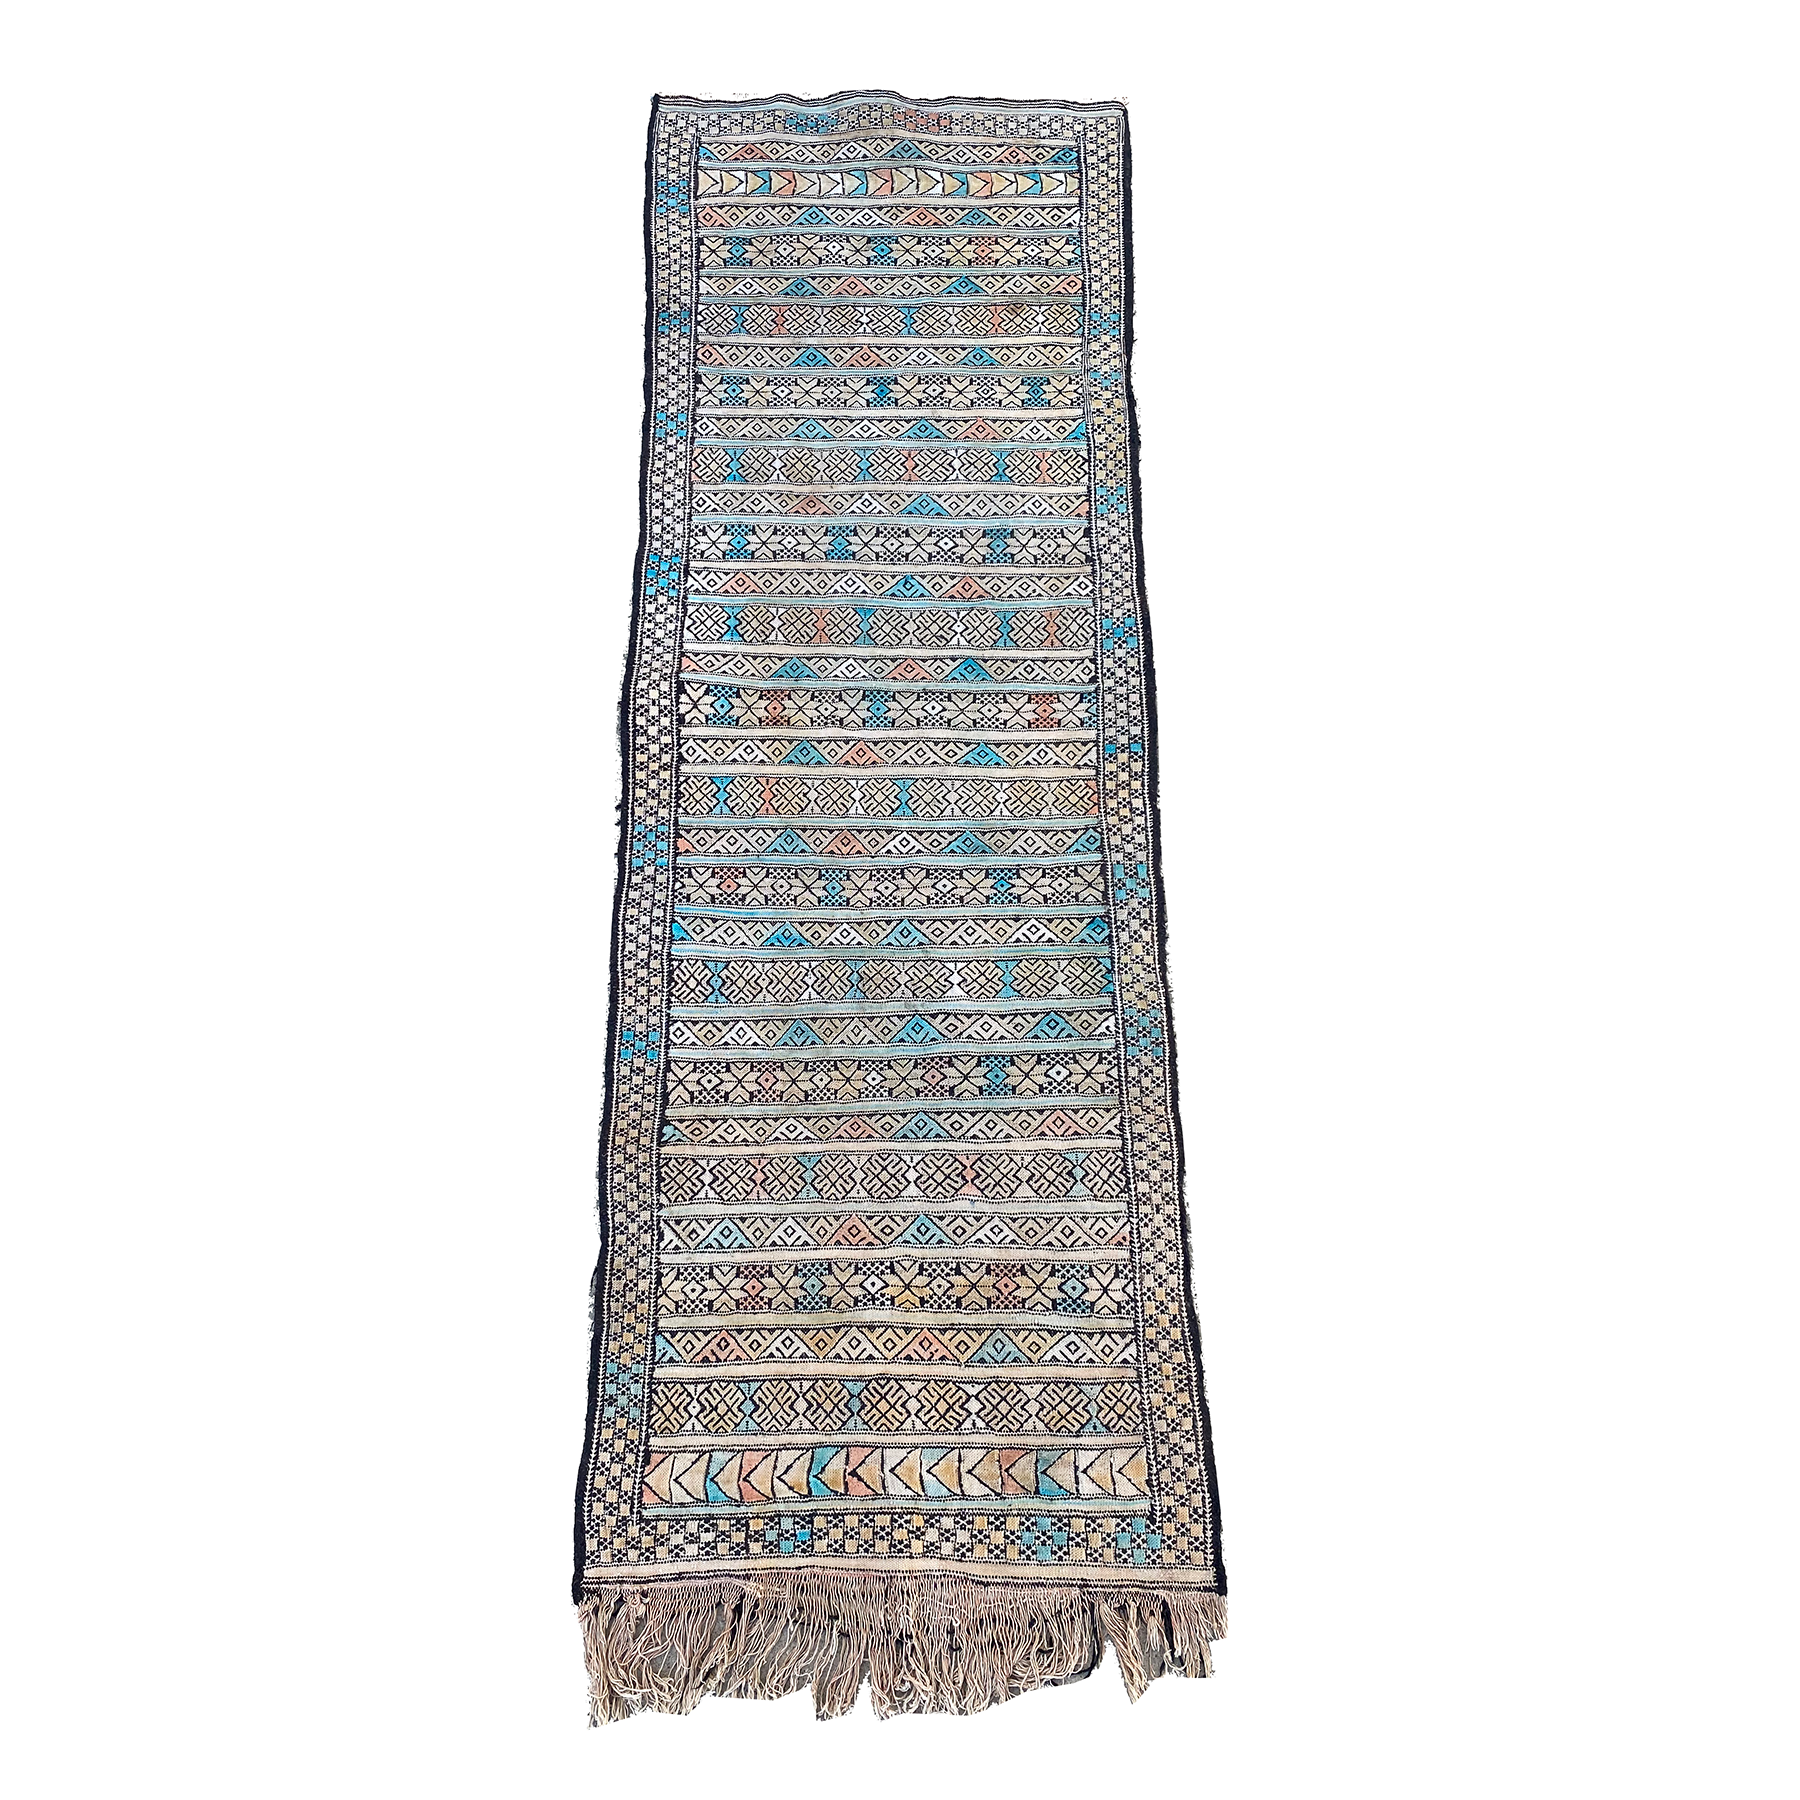 Moroccan flatweave kilim with blue, pink, and yellow details - Kantara | Moroccan Rugs